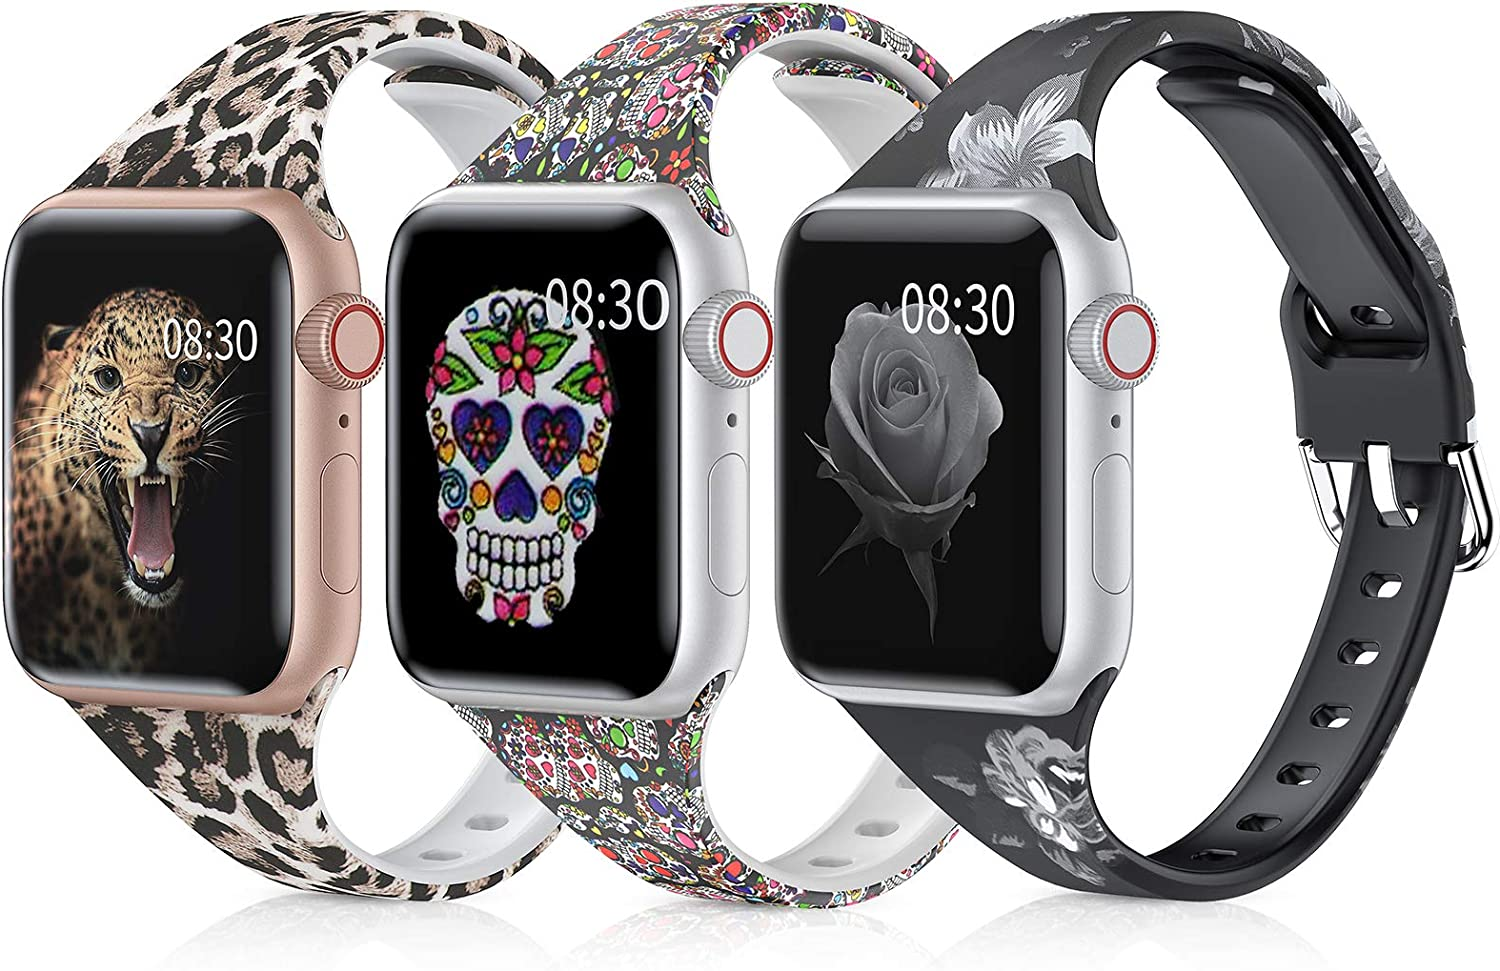 Moolia Slim Printed Pattern Band Compatible with Apple Watch Bands 38mm 40mm, Soft Silicon Floral Fadeless Women Narrow Replacement Strap for iWatch SE Series 6/5/4/3/2/1